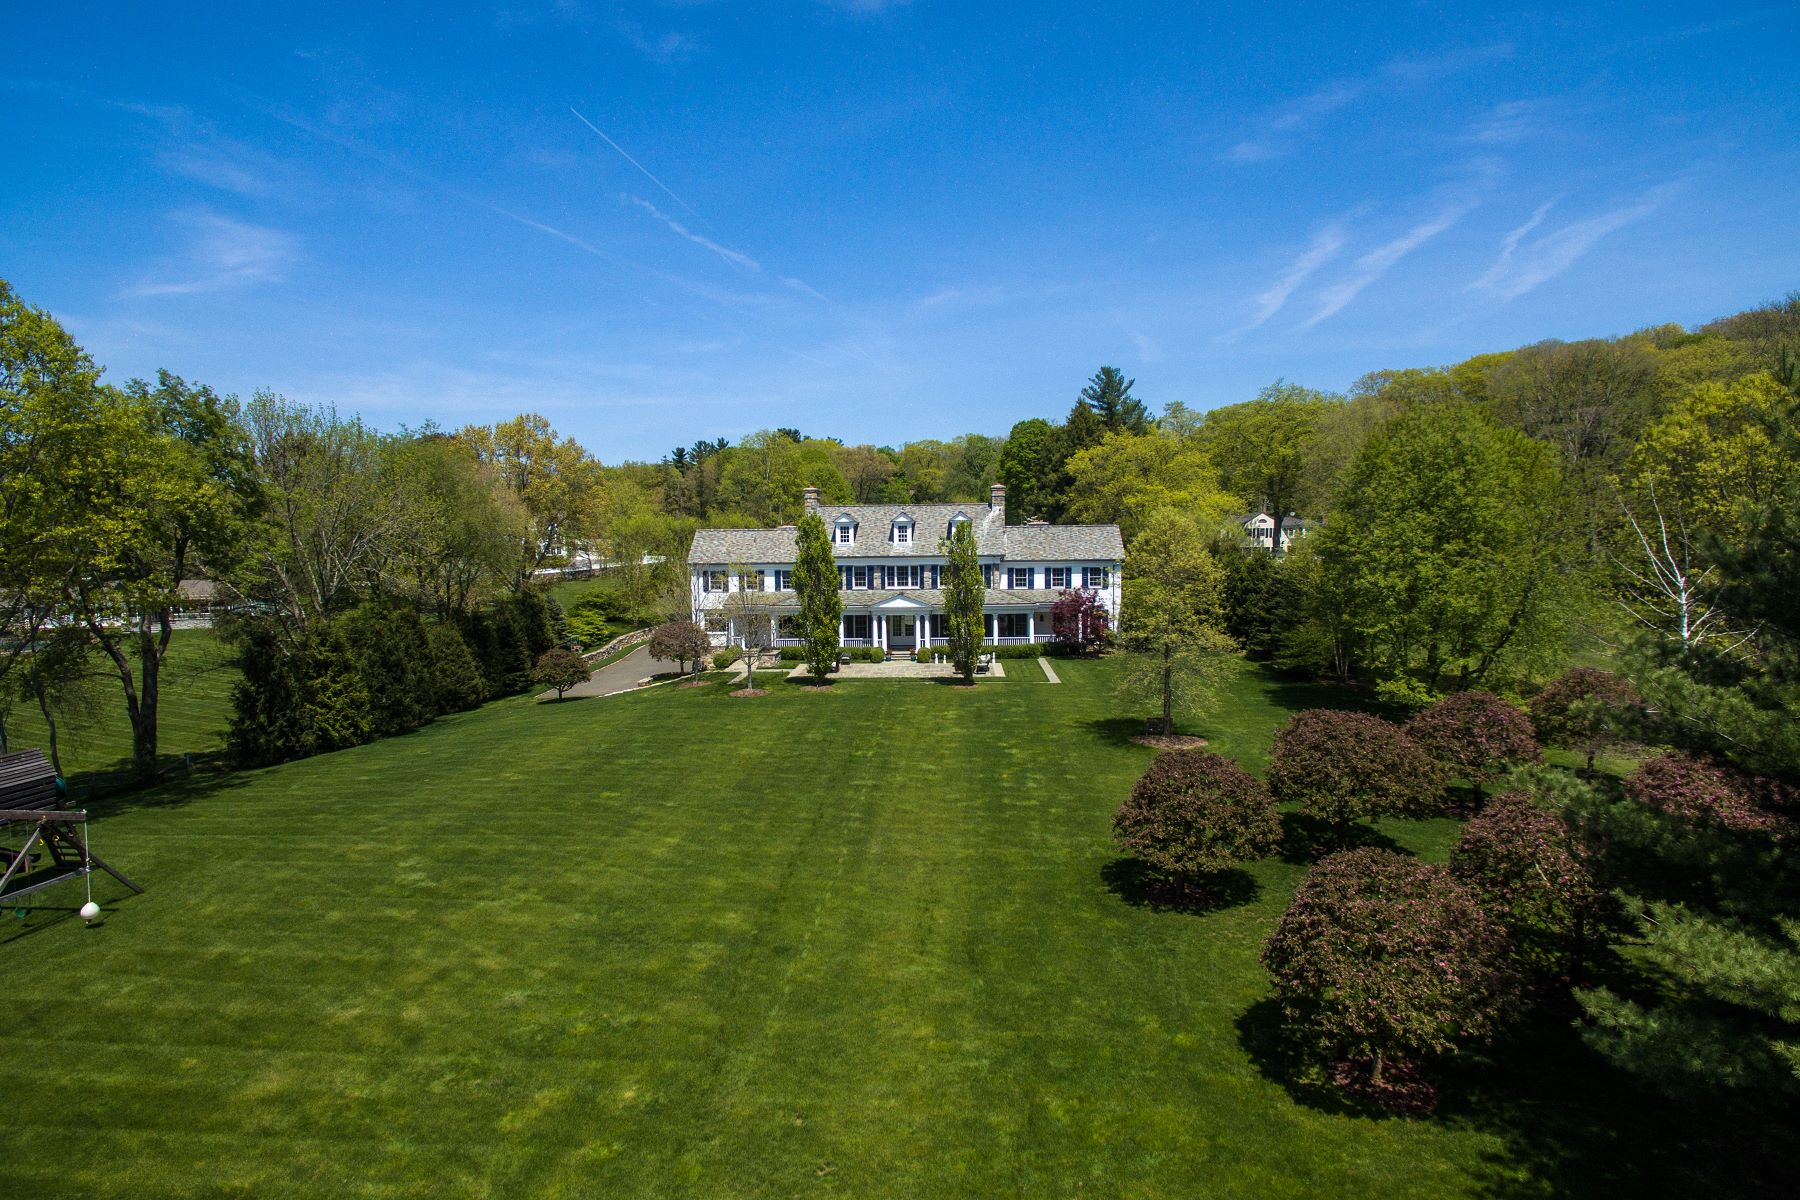 Additional photo for property listing at 1480 Ponus Ridge 1480 Ponus Ridge New Canaan, Connecticut 06840 United States